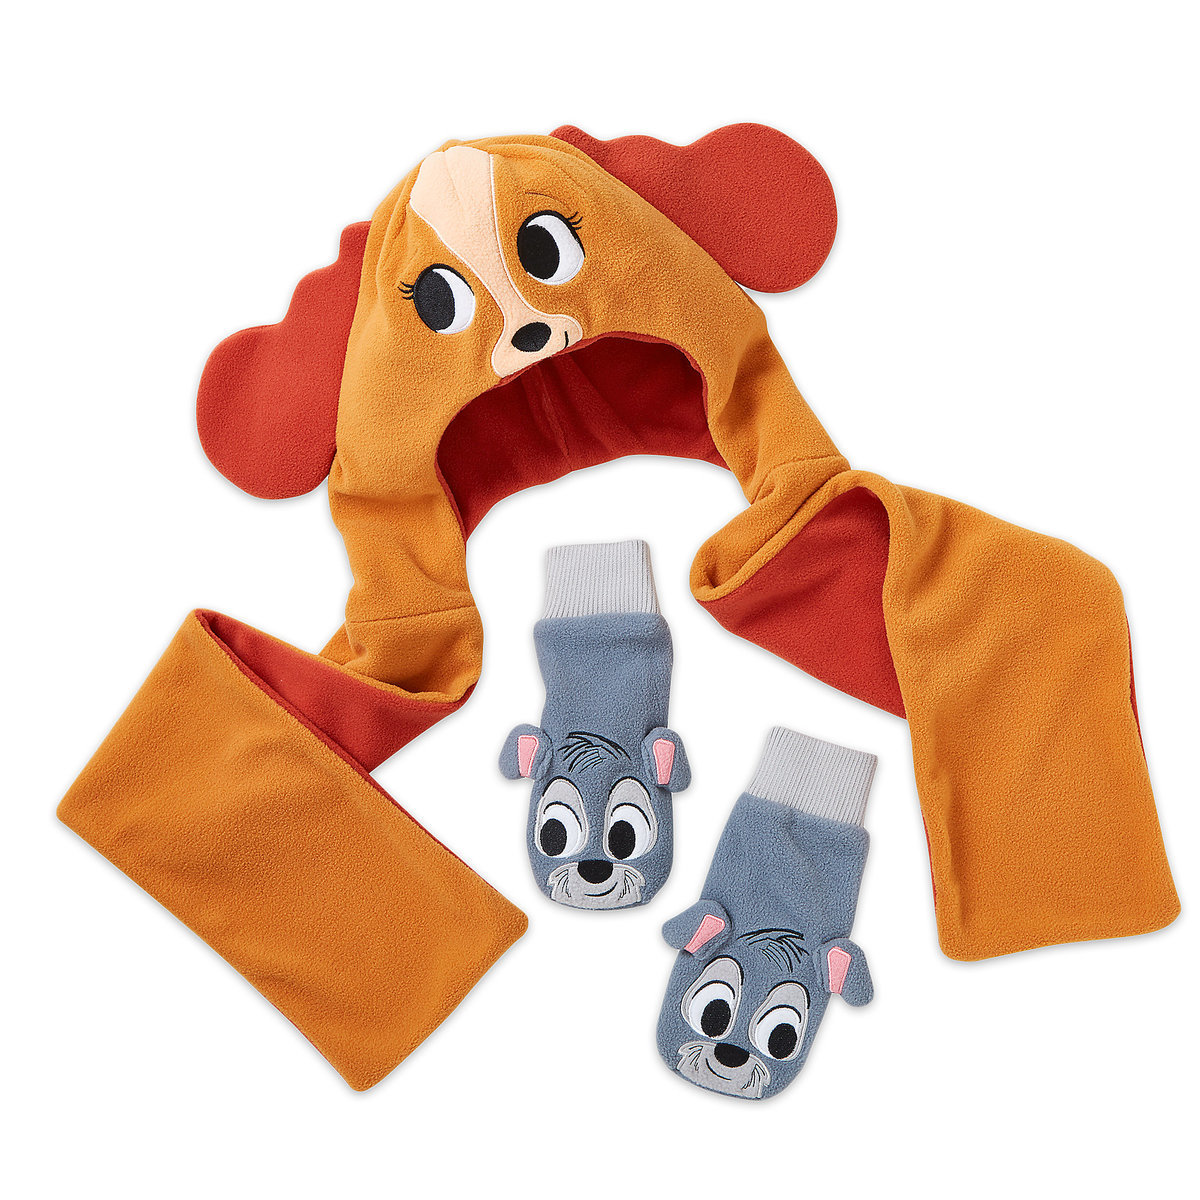 97dae583f5f Product Image of Lady and the Tramp Warmwear Accessories Set - Disney  Furrytale friends   1